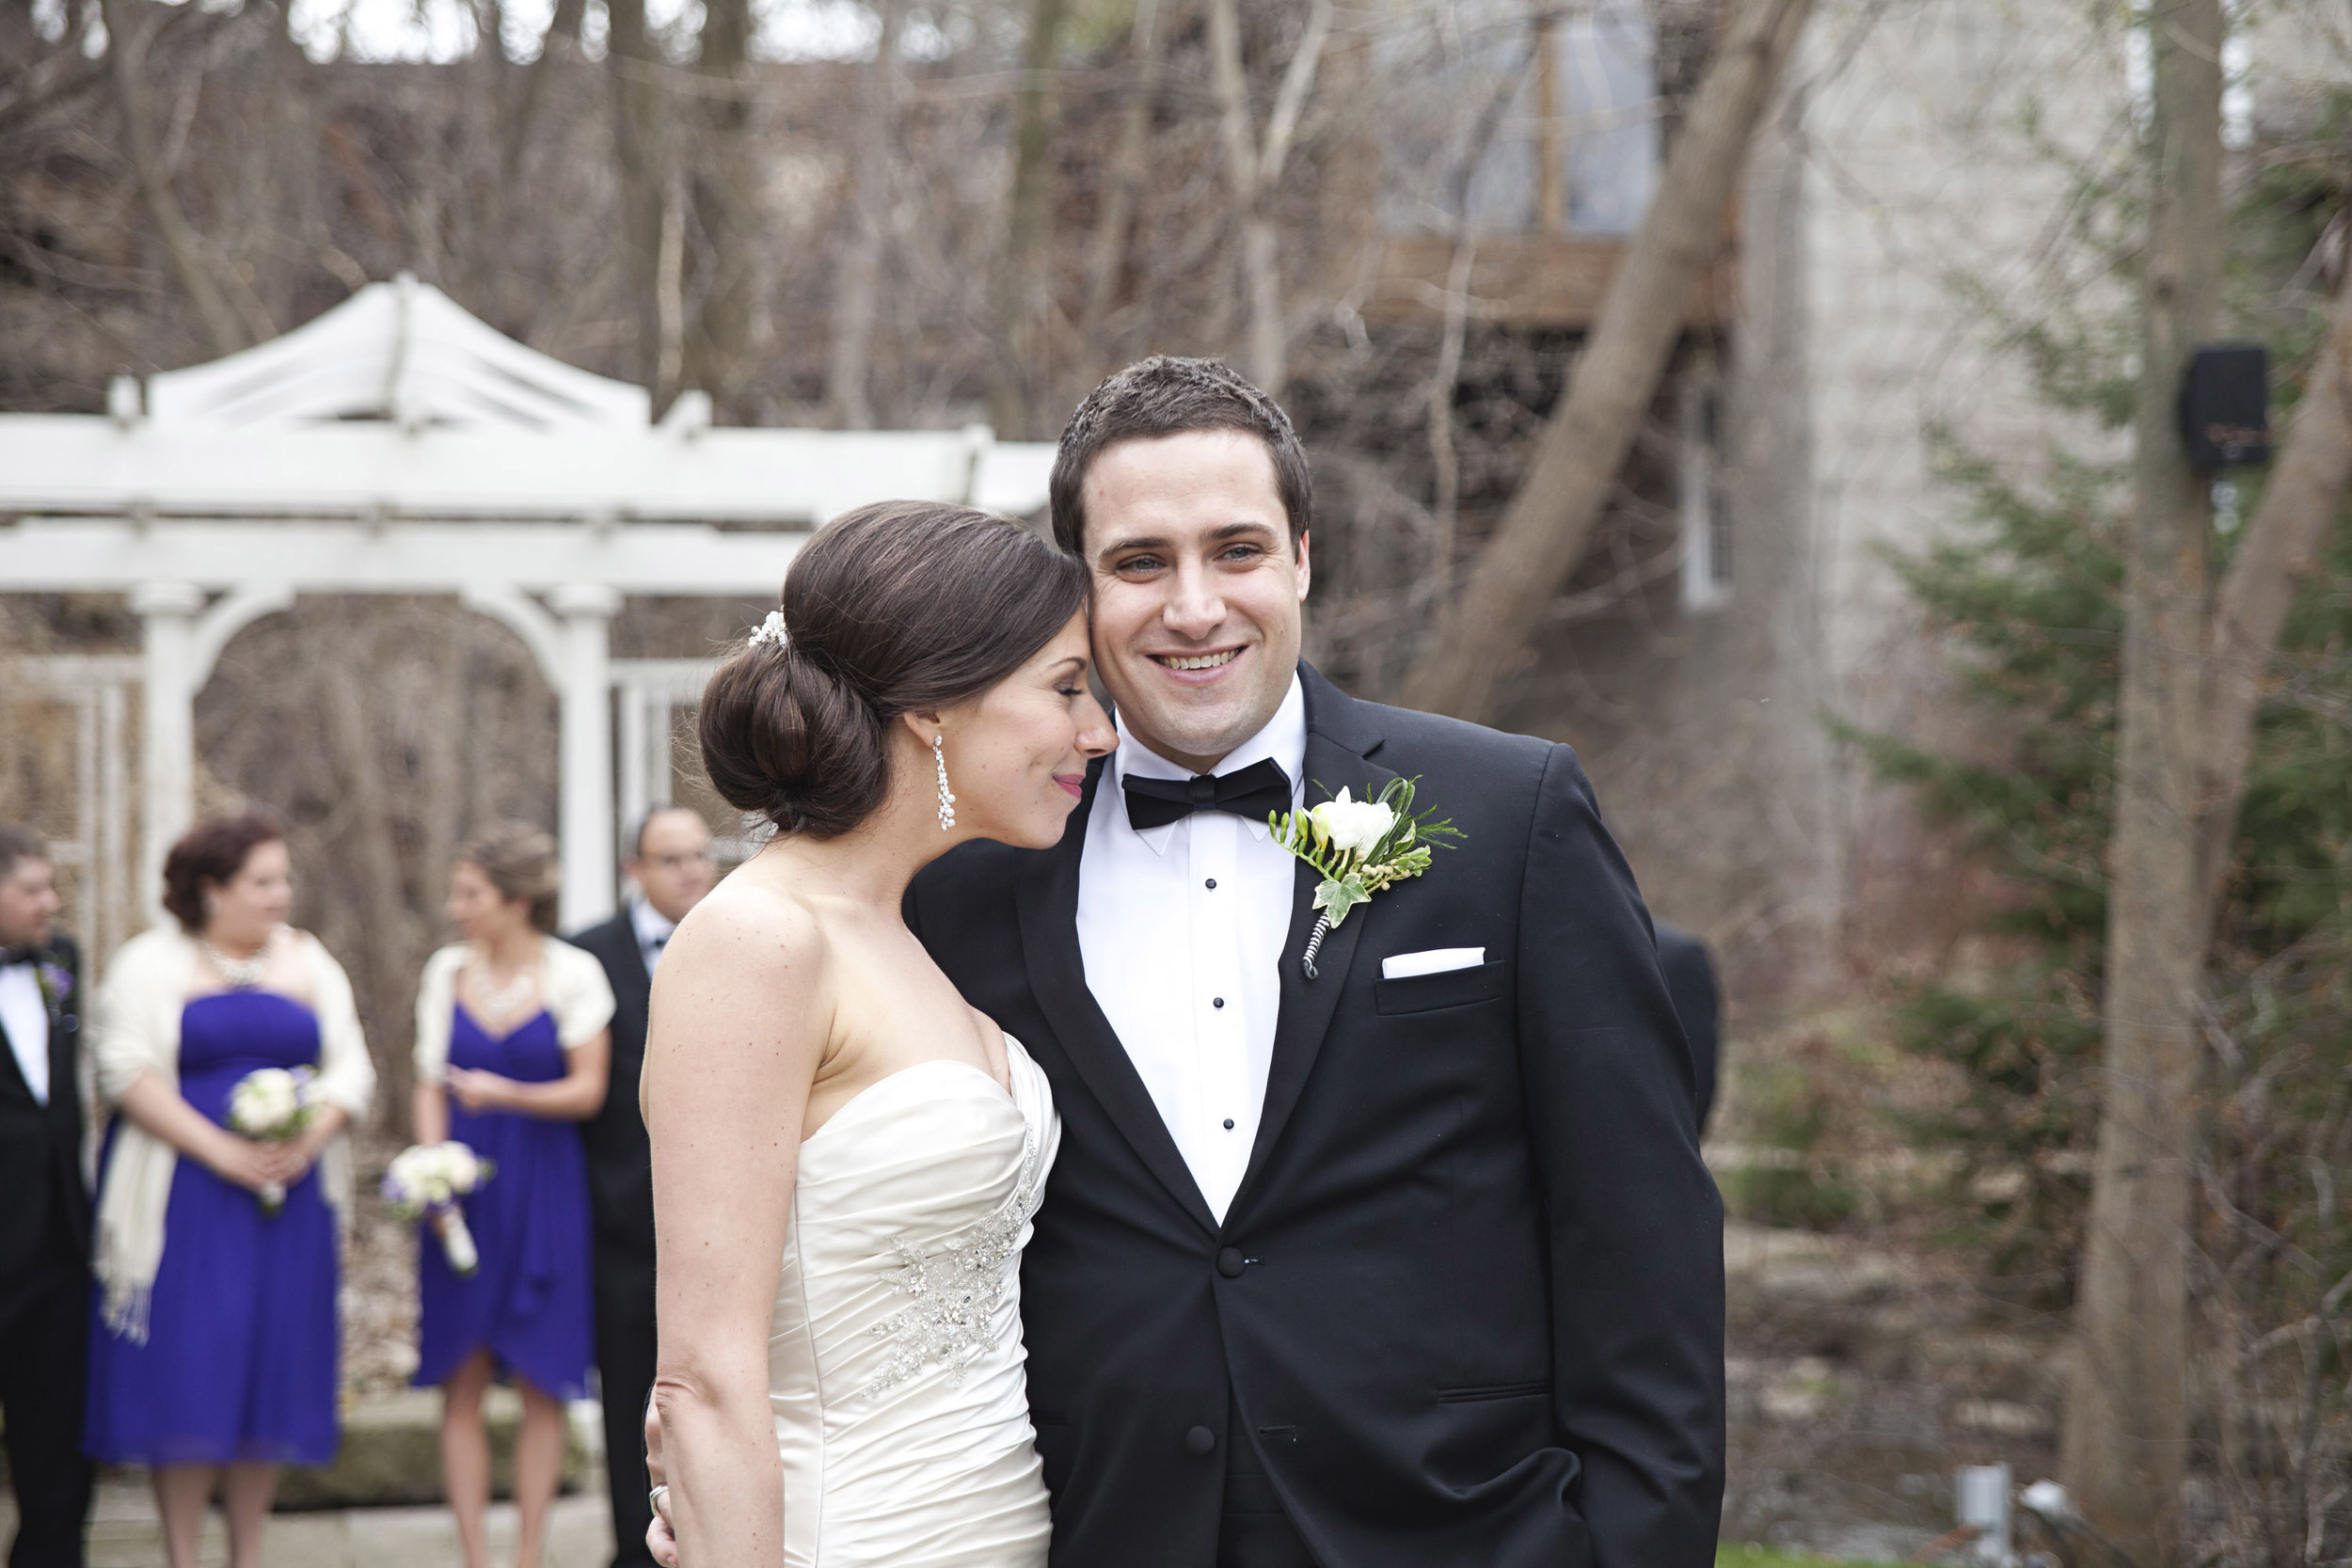 Bridal photos at Ancaster Mill in Hamilton, Ontario